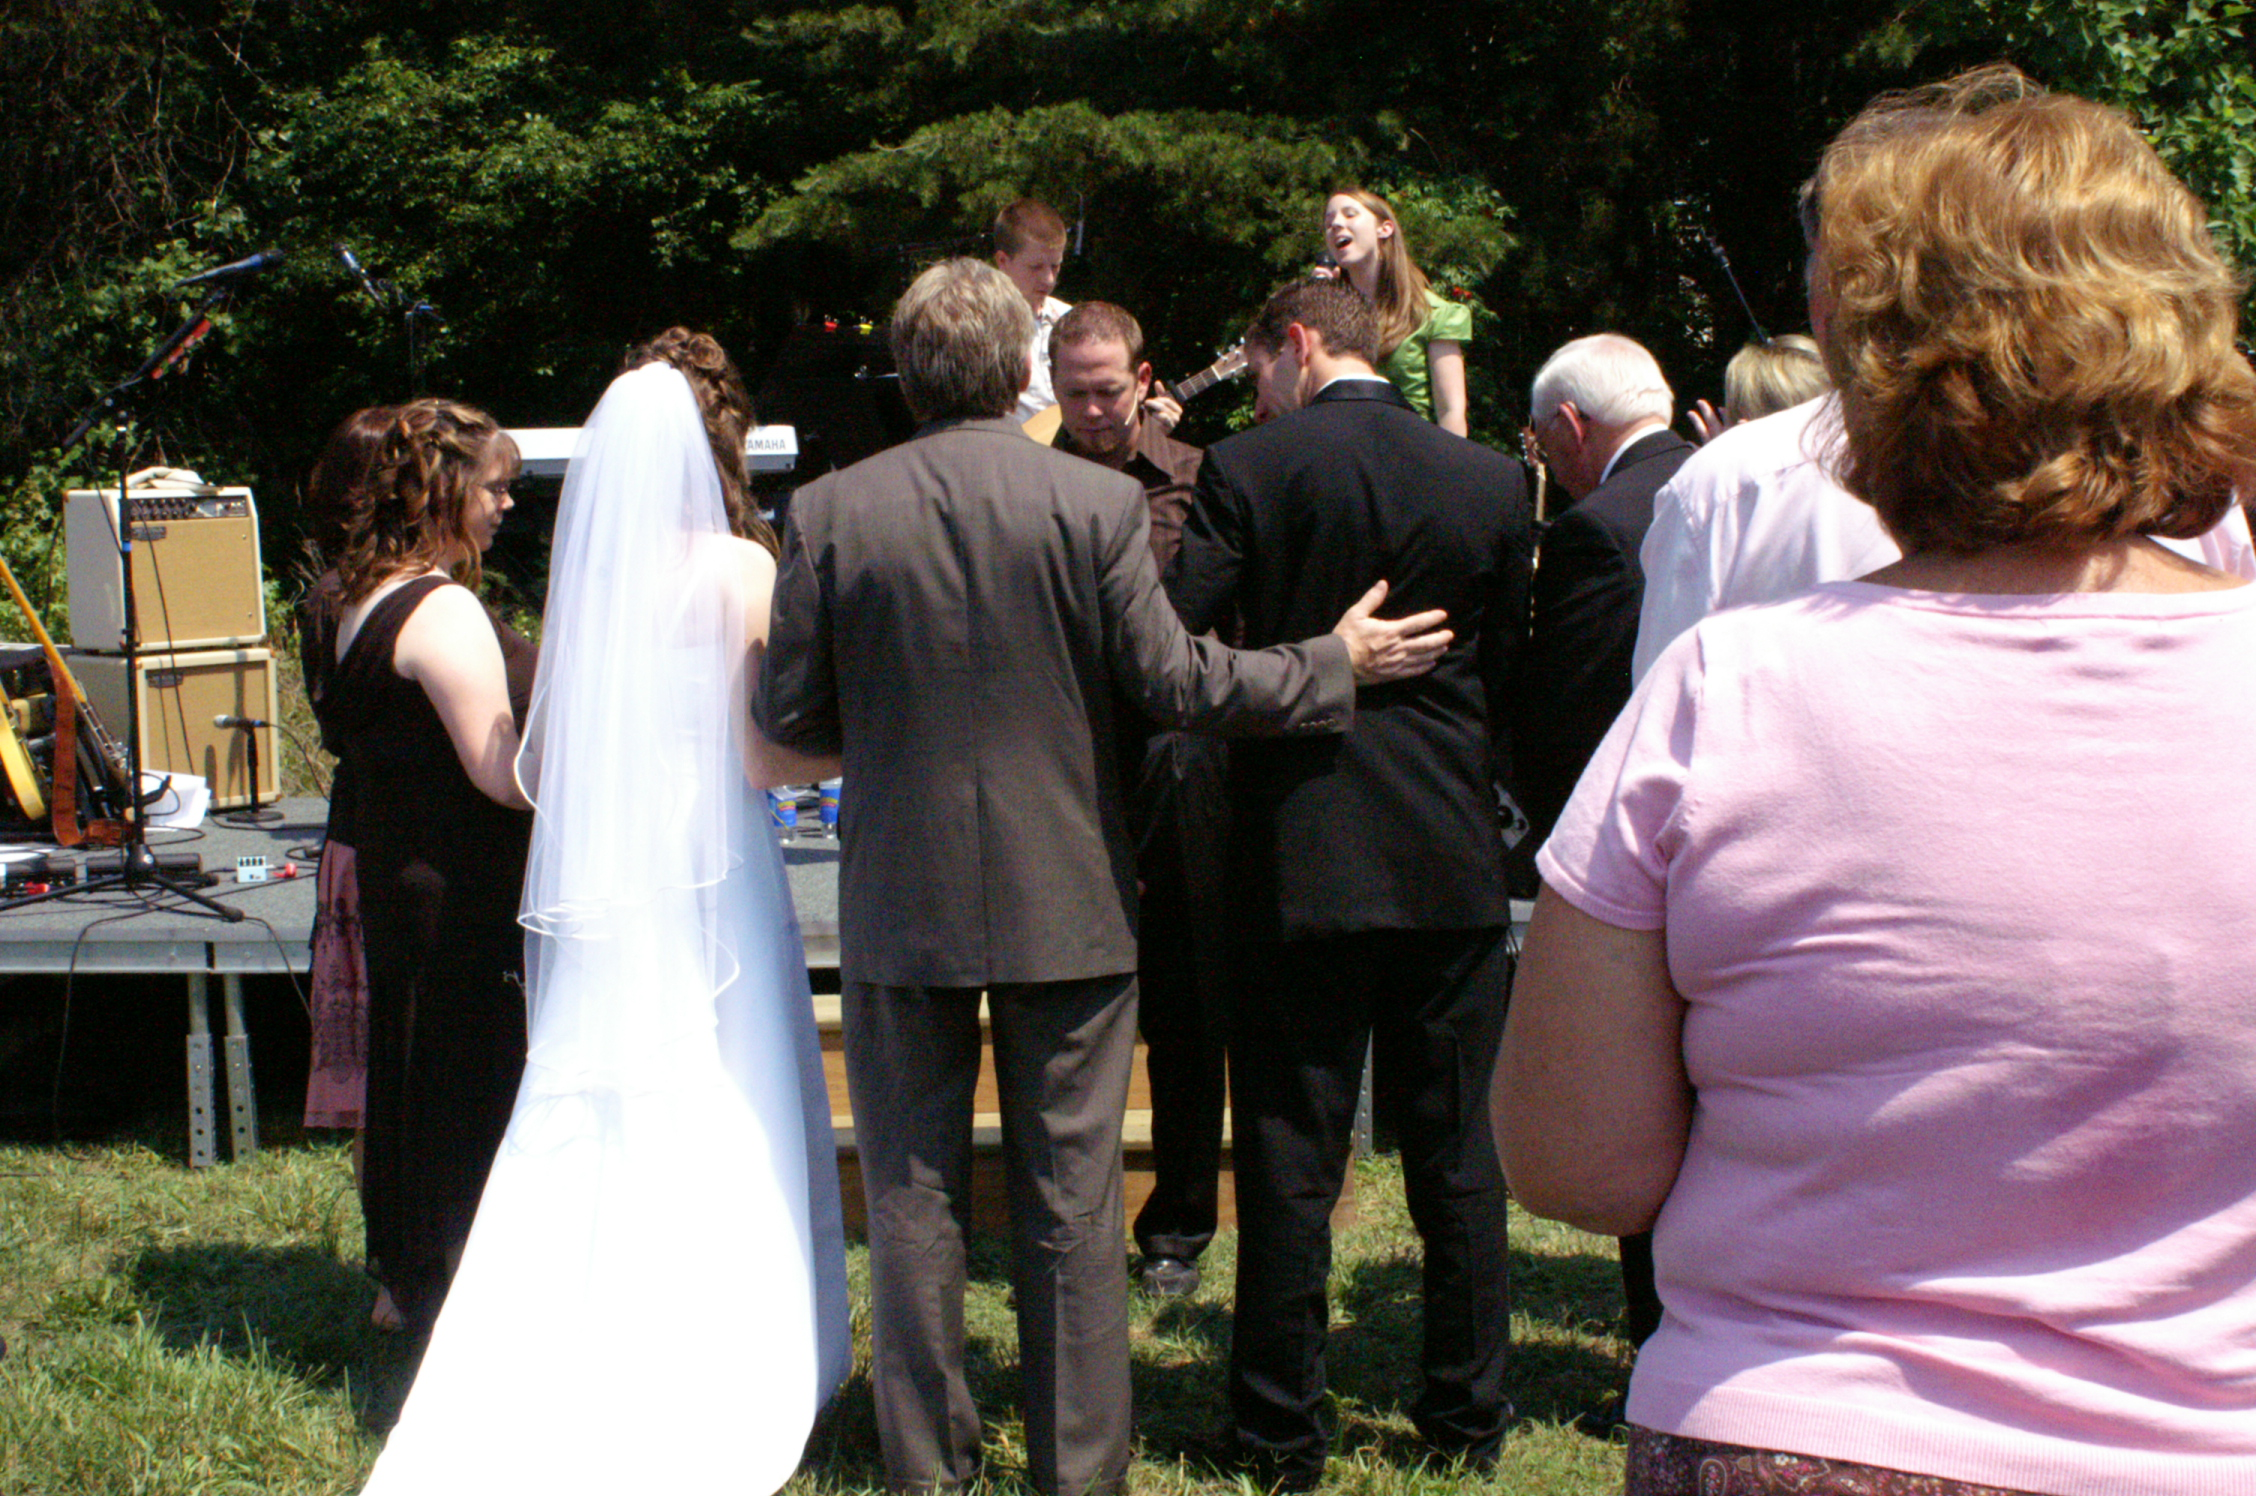 Our families prayed for us as we started off the ceremony.